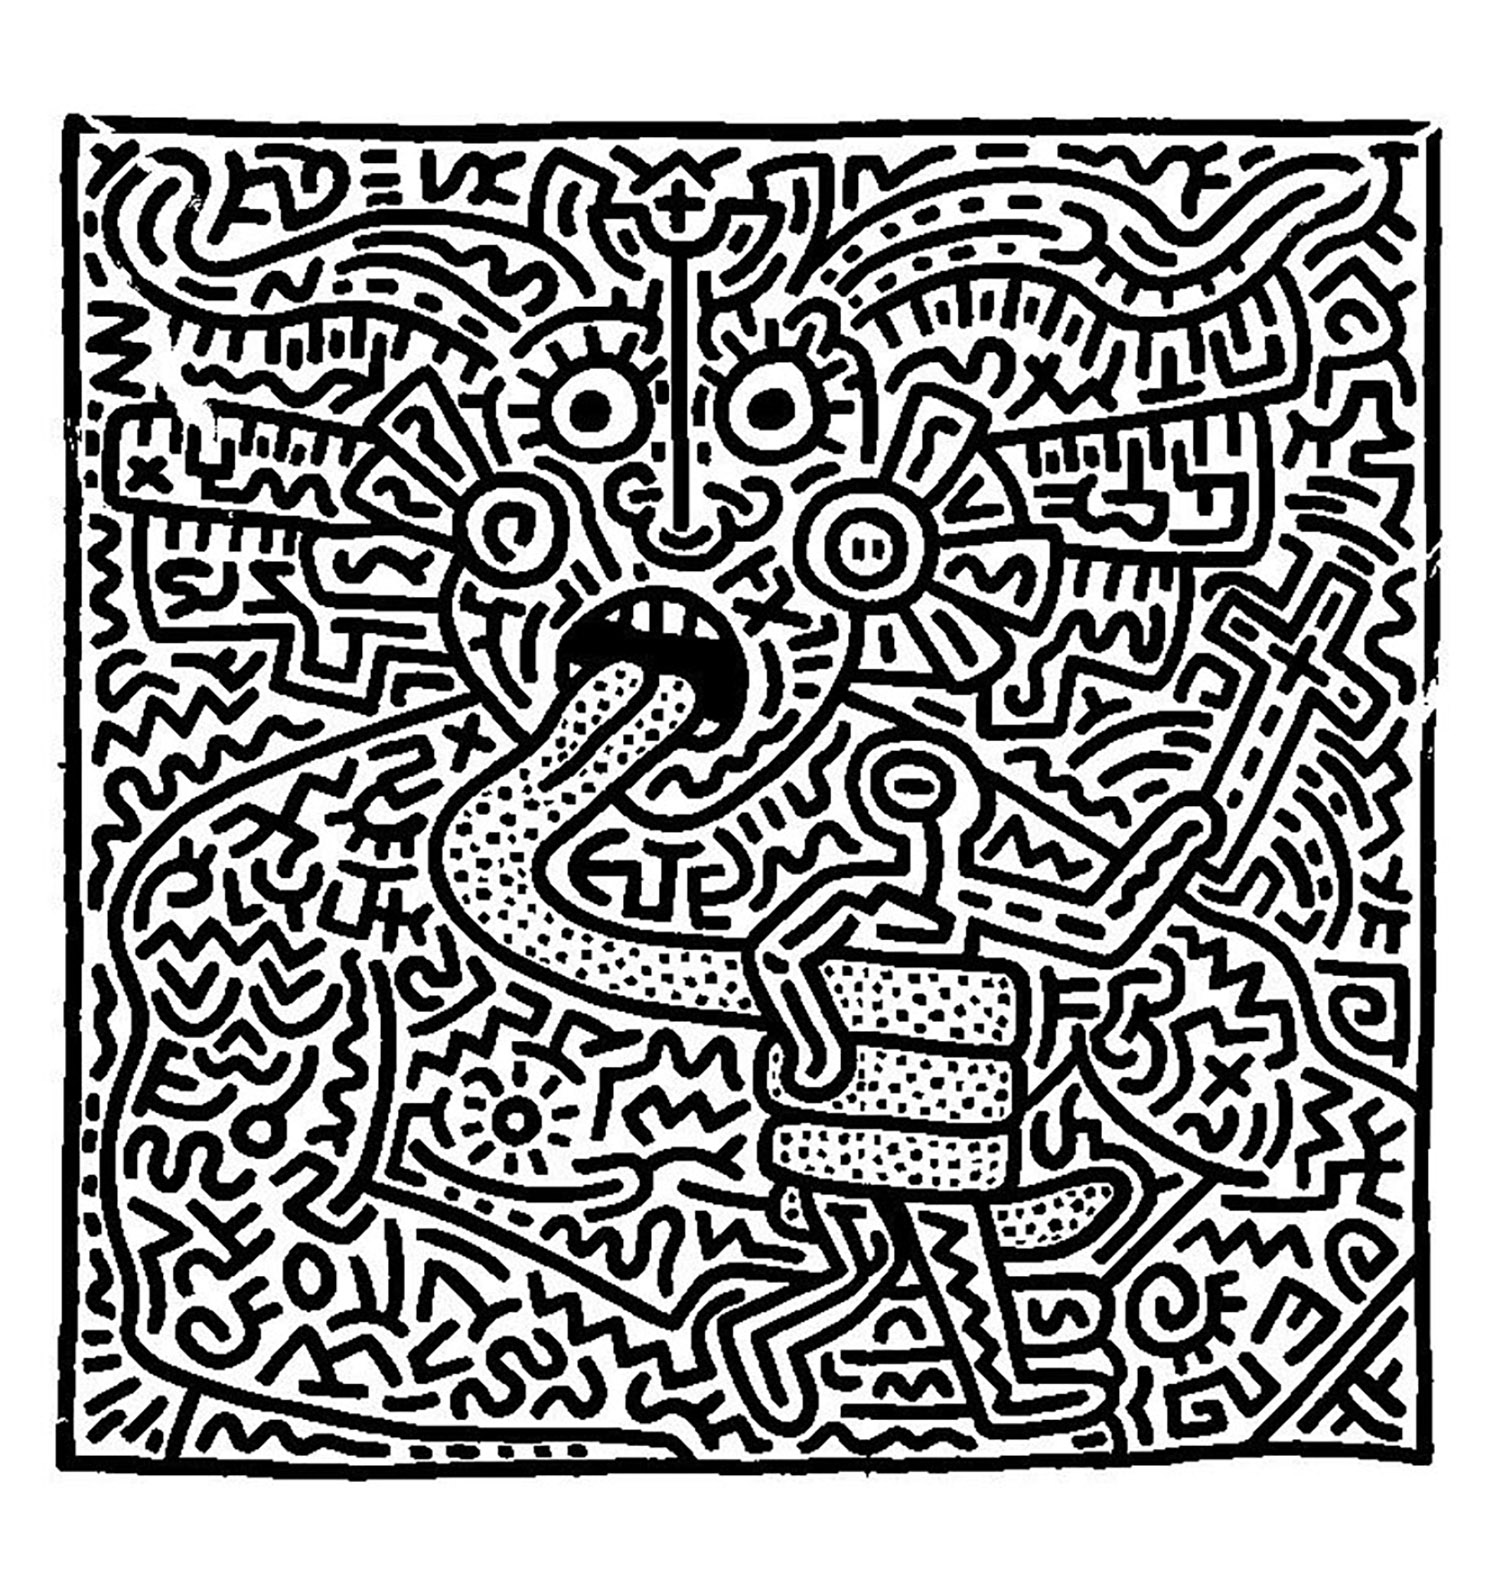 Coloring adult keith haring 1